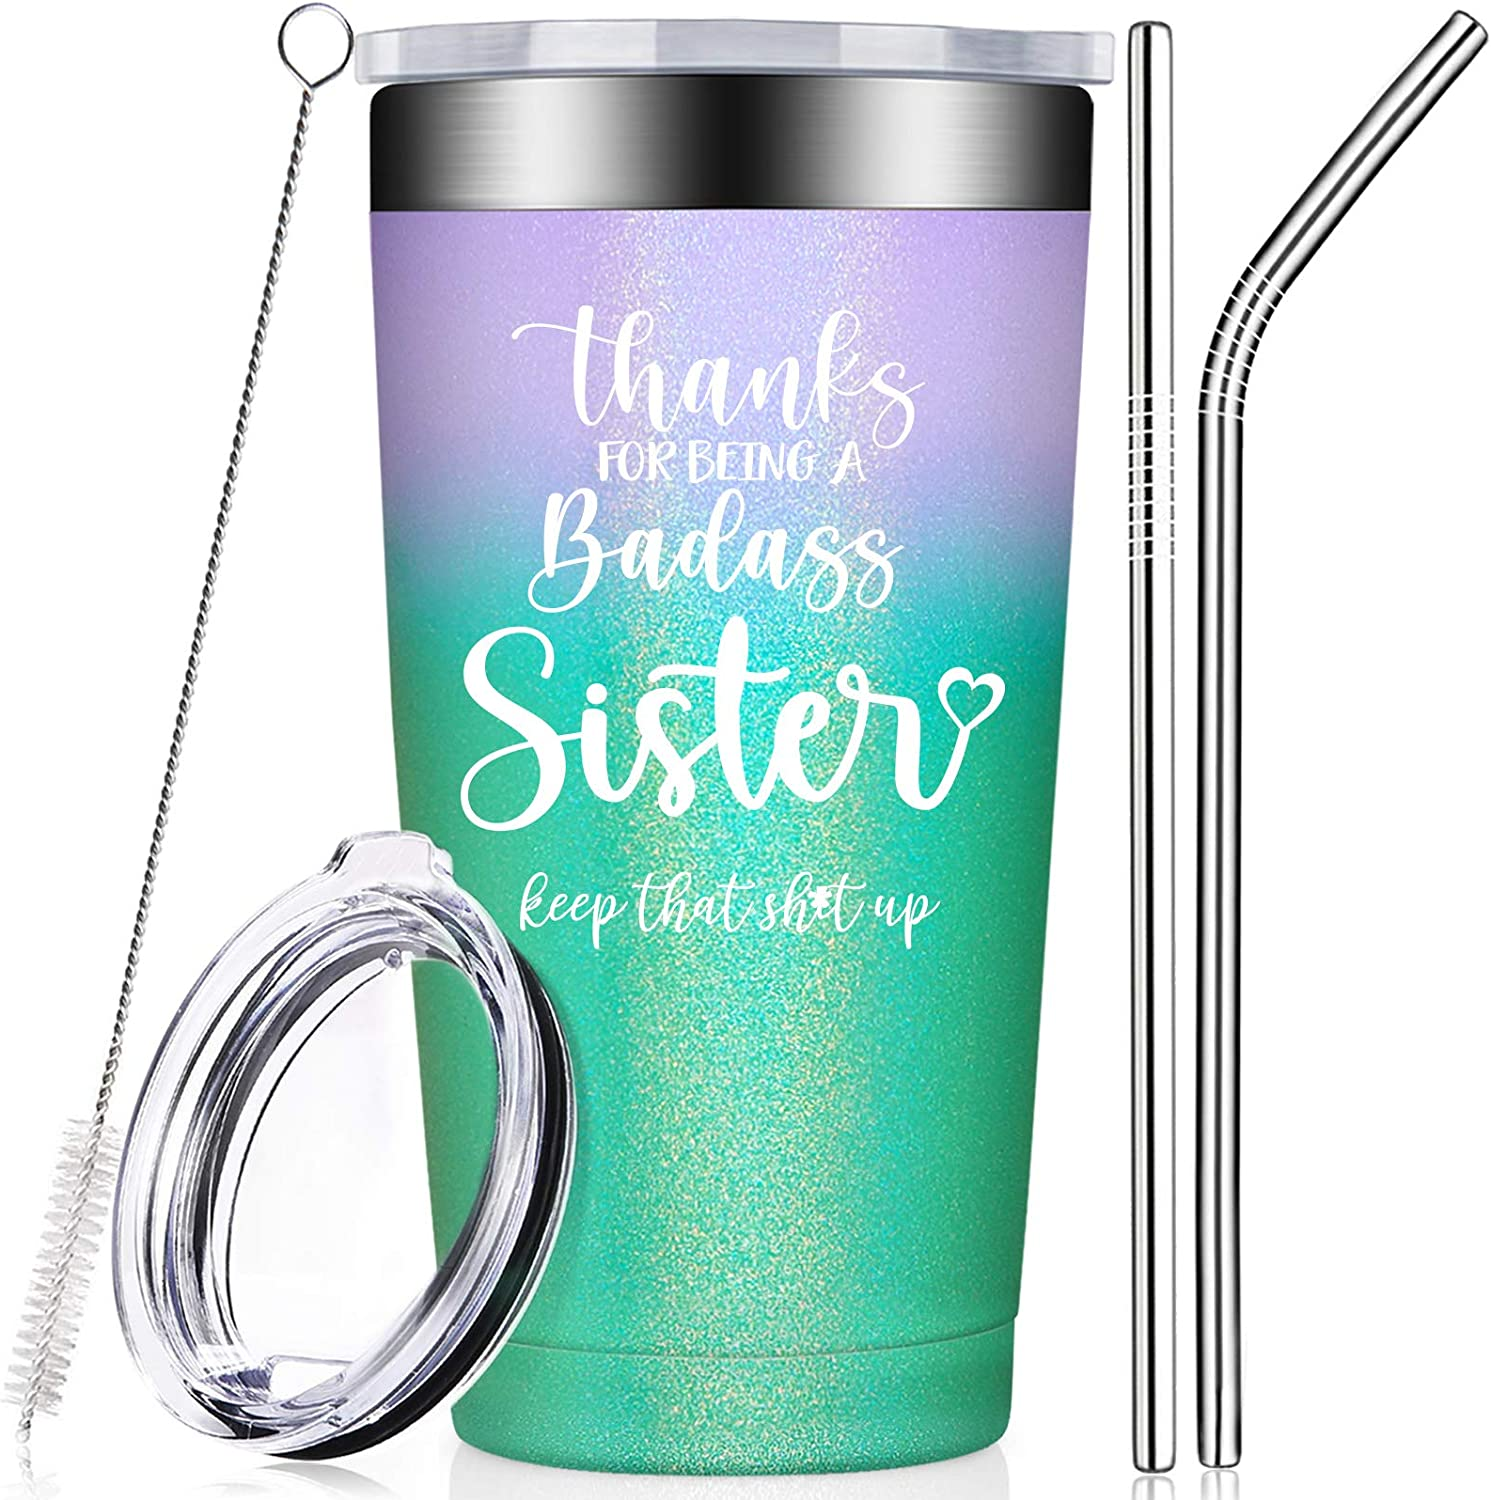 Sister Gifts from Sister, Brother - Sister in Law Gifts - Funny Big Sister Birthday, Thank You, Christmas Gifts for Unbiological, Soul Sister - Tumbler Cup with Lid and Straw